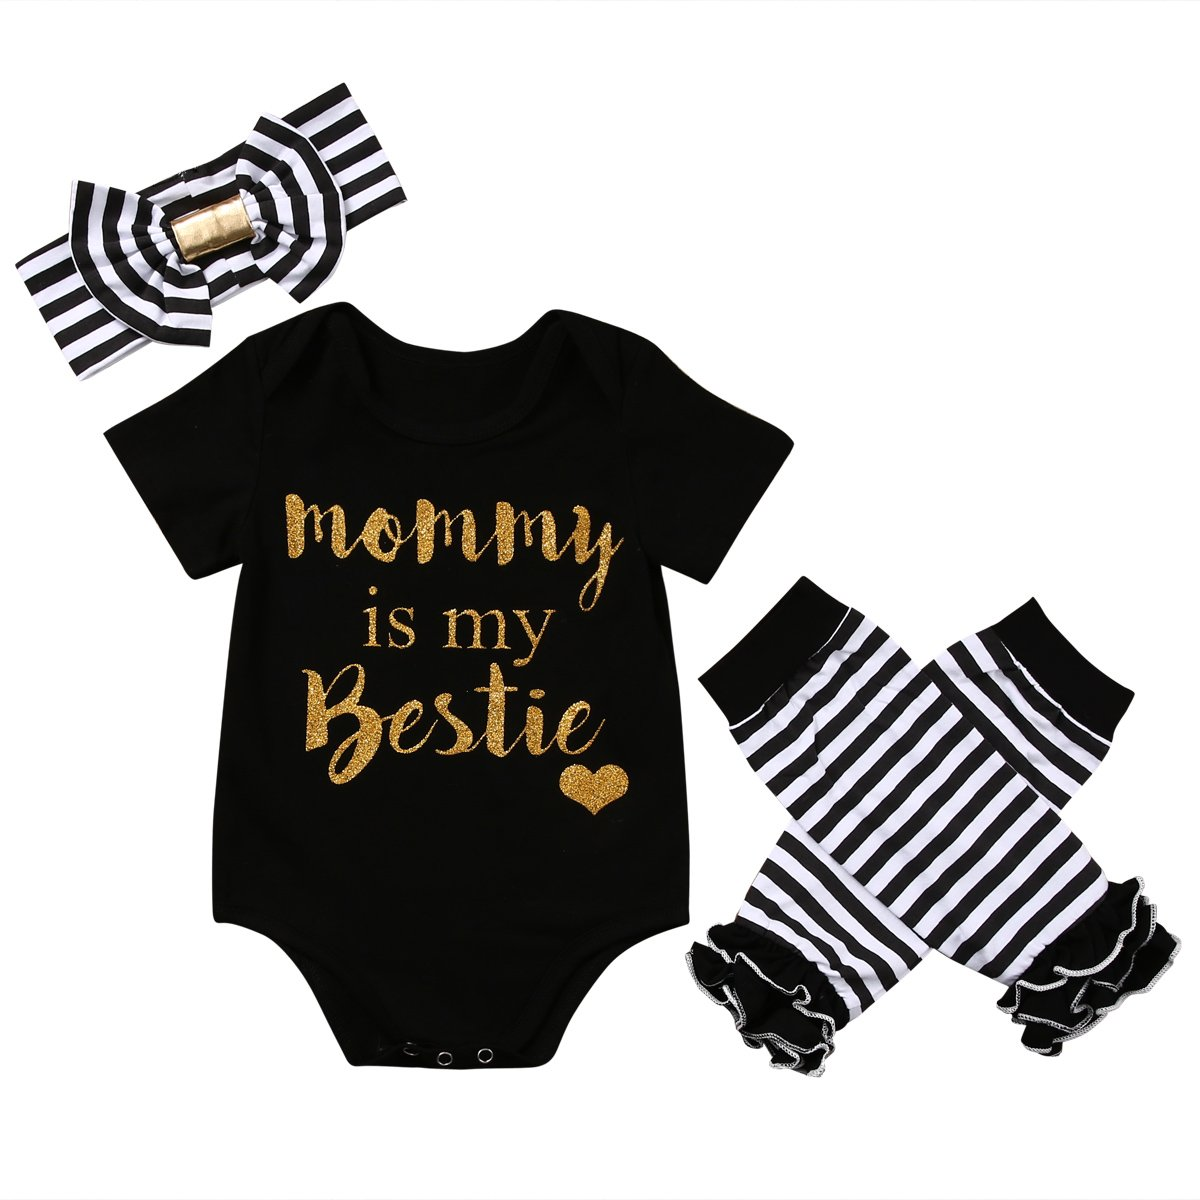 Baby Girls Mommy Is My BestieボディスーツストライプレッグウォーマーOutfit withヘッドバンド 70(3-6M) ブラック B01N56JPWH